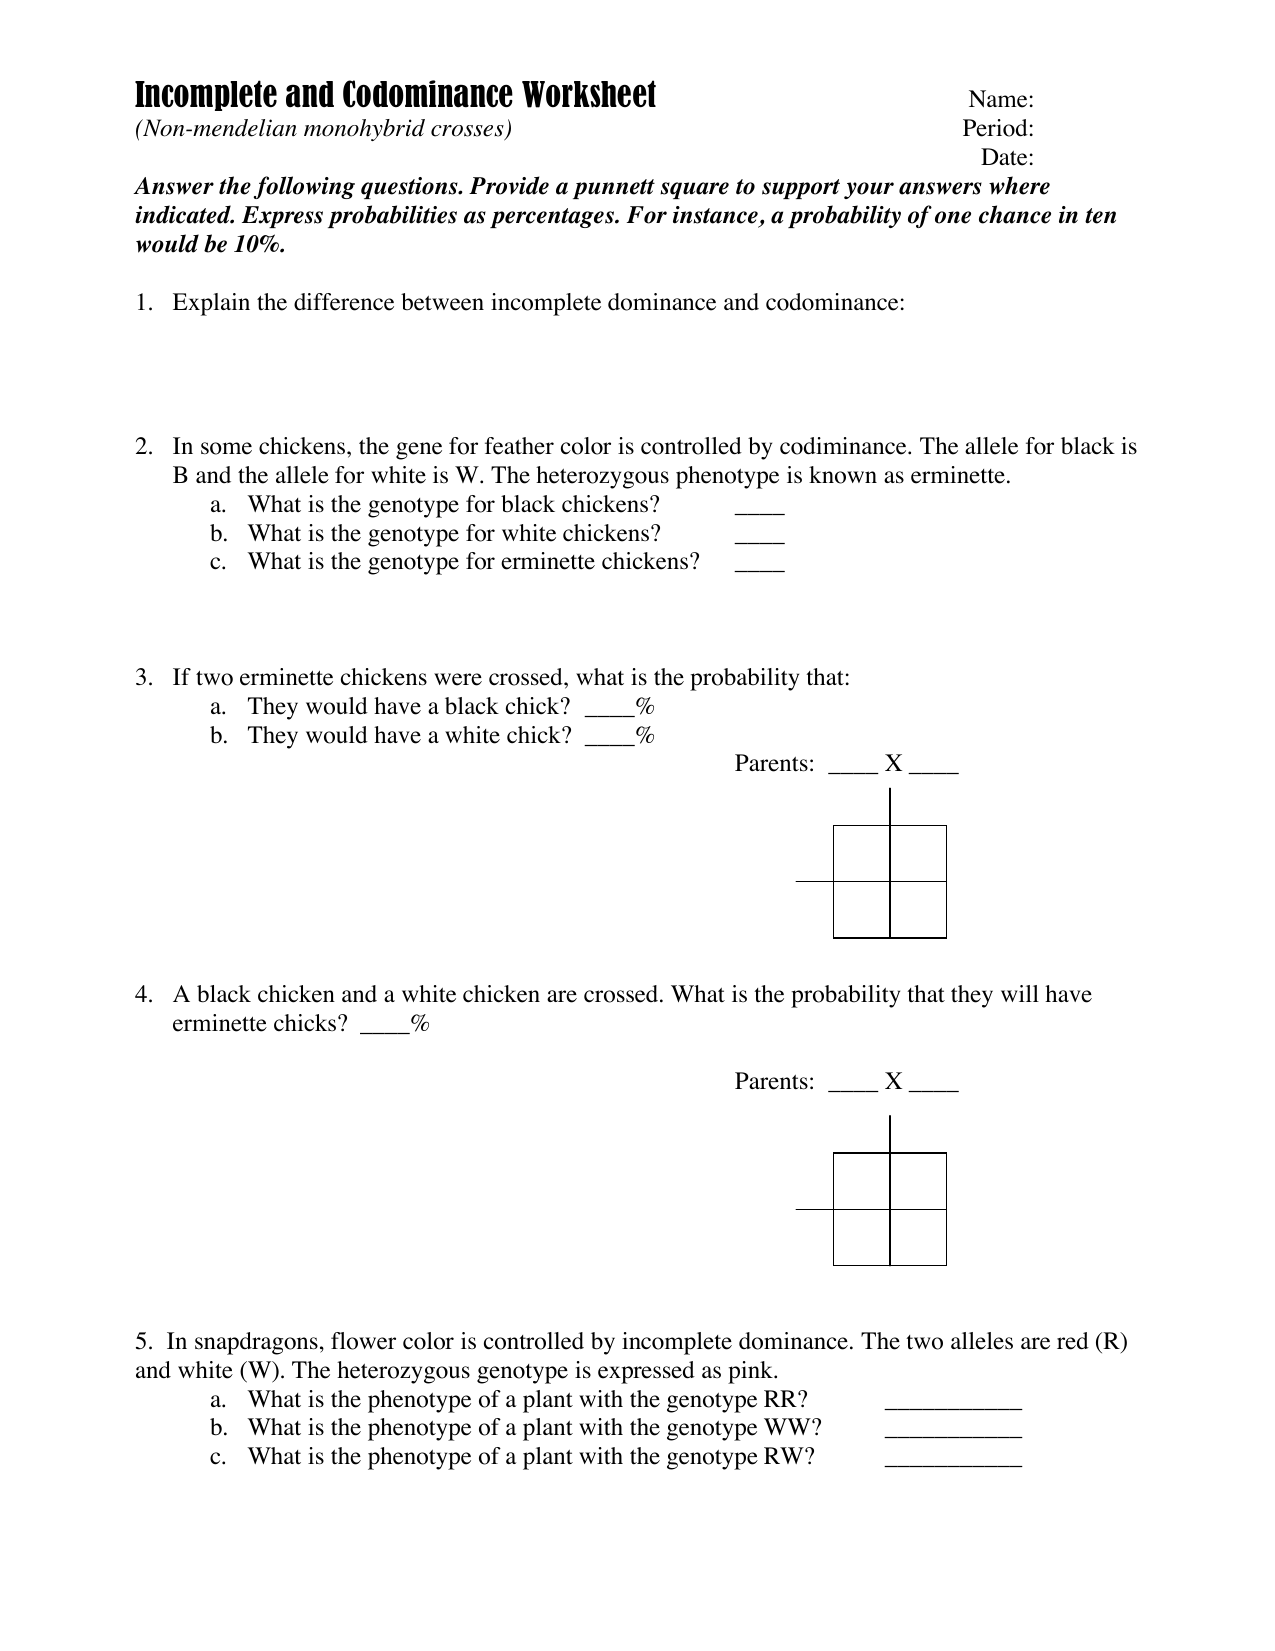 Codominance worksheet blood types answers 1154644 Myscres as well In plete and Codominance Worksheet moreover In plete and Codominance Worksheet also Best In plete Dominance   ideas and images on Bing   Find what you furthermore  likewise  likewise In plete and Codominance Worksheet – ishtarairlines as well Codominance And In plete Dominance Worksheet The best worksheets together with New Creative Resume Archives   Wp landingpages   Creative Resume as well in plete and codominance worksheet answers   Siteraven as well In plete Vs Codominance Worksheet  1369337914201 – In plete and besides 38 In plete and Codominance Worksheet furthermore  also In plete and Codominance Worksheet Answers   Homedressage further codominance worksheet blood types in plete and codominance as well . on incomplete and codominance worksheet answers